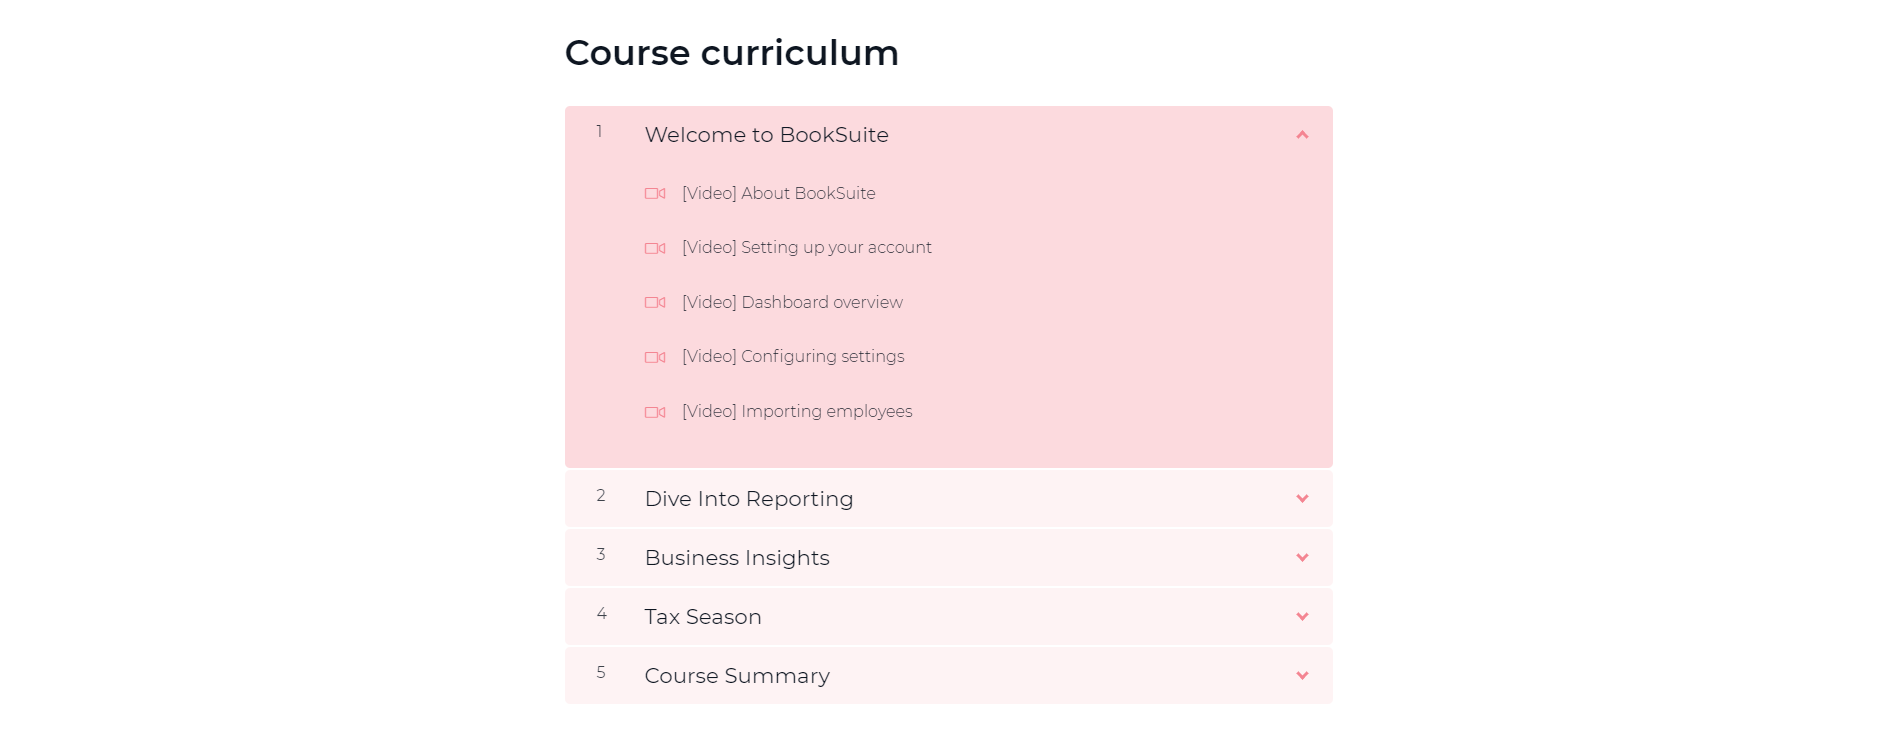 course_curriculum_-_example_-_empire_spark.png